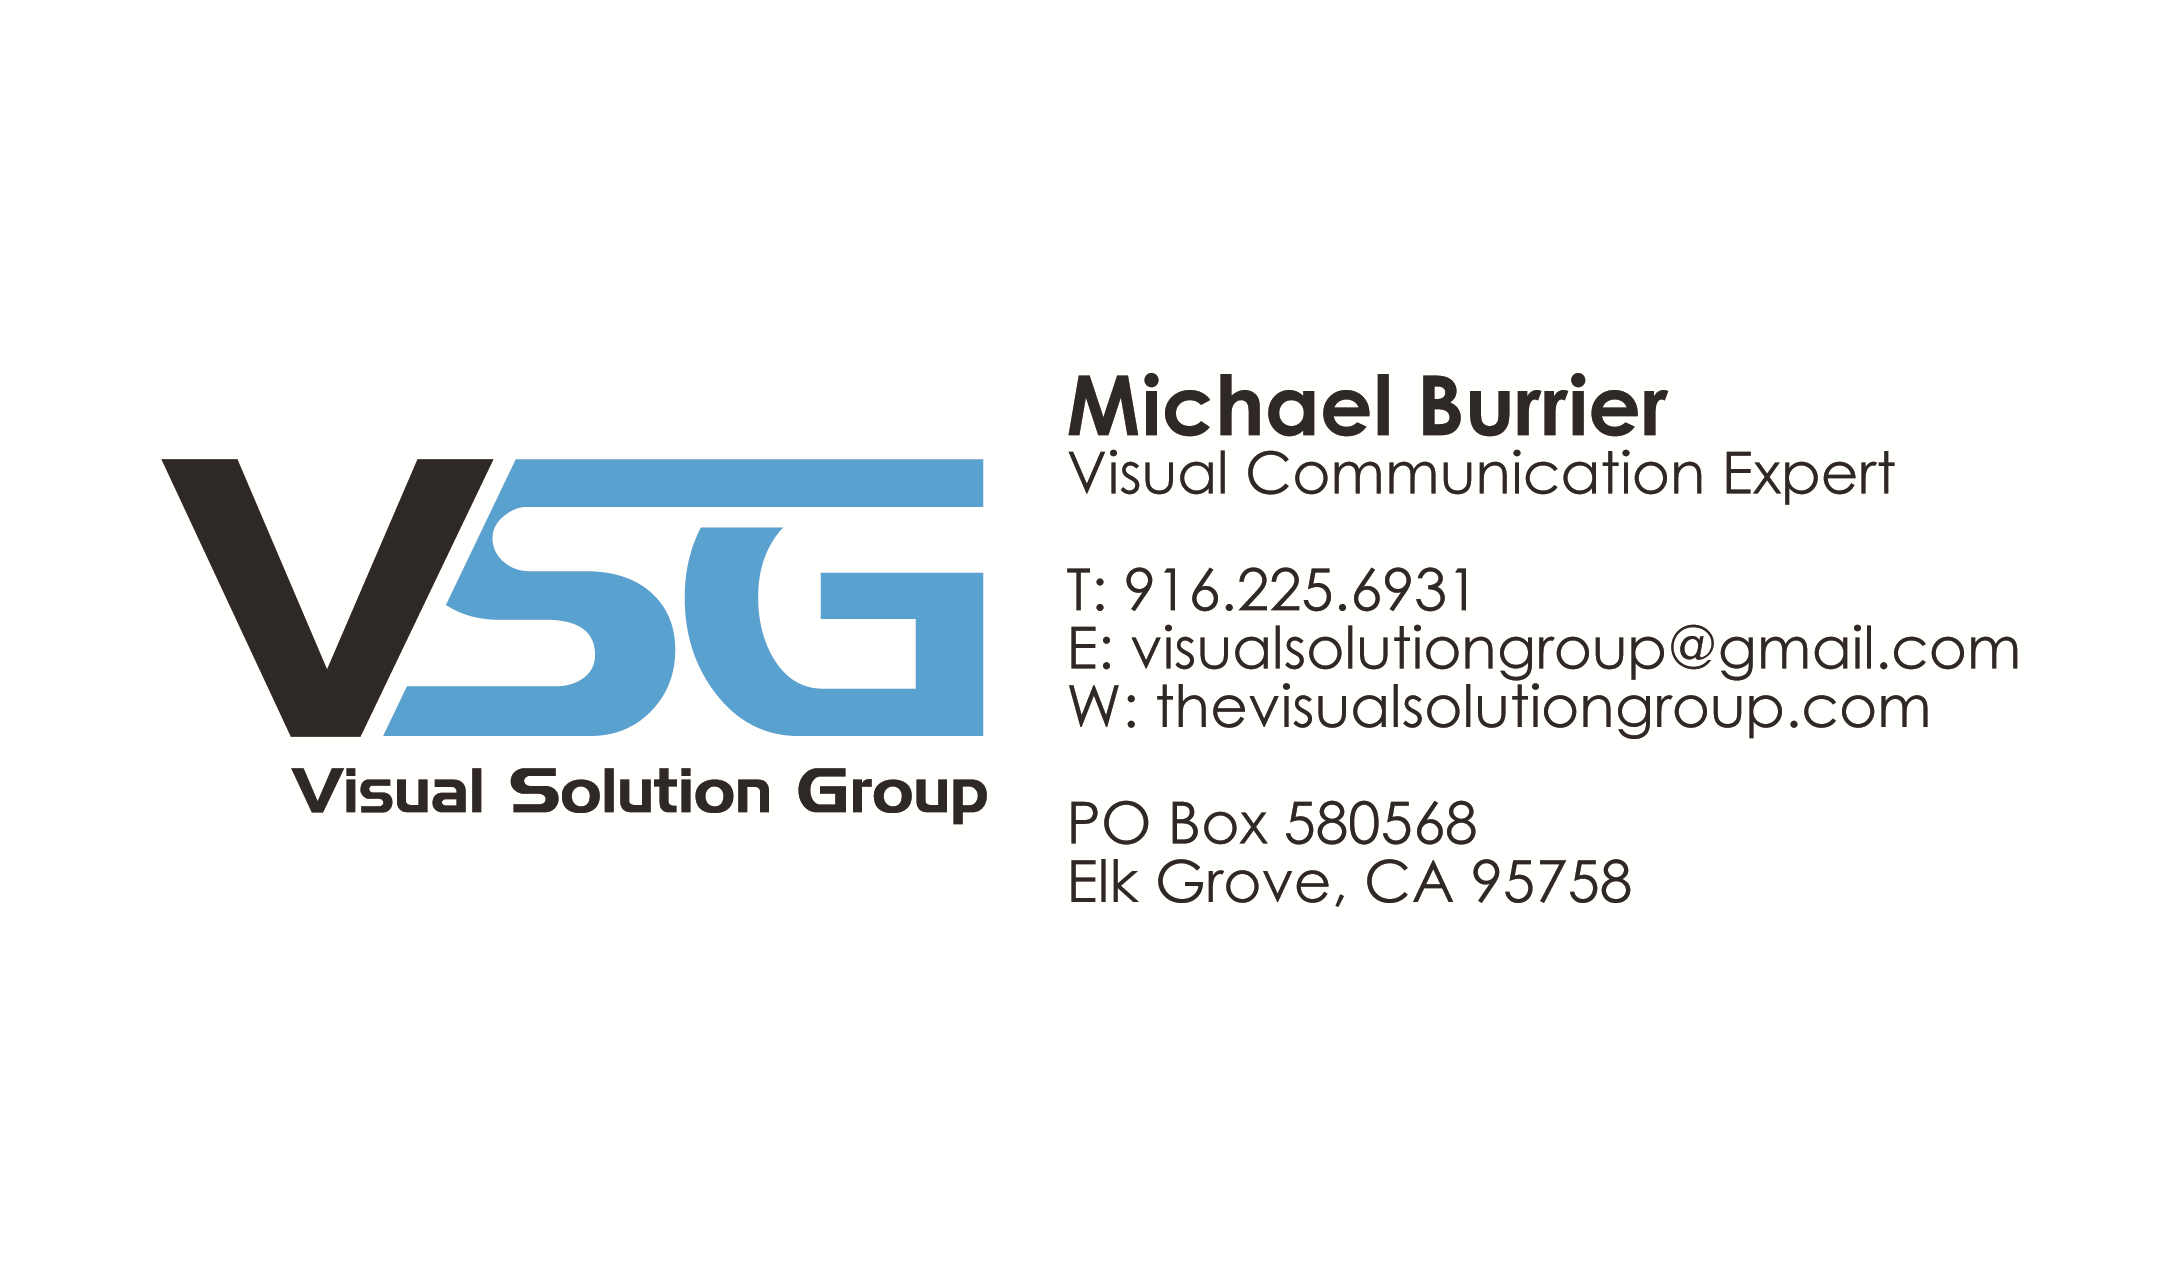 Visual Solution Group - Visual Solutions Group provides solutions to your graphics and sign needs. We bring your vision to life graphically. If your business needs to be found visually, we are your visual solution